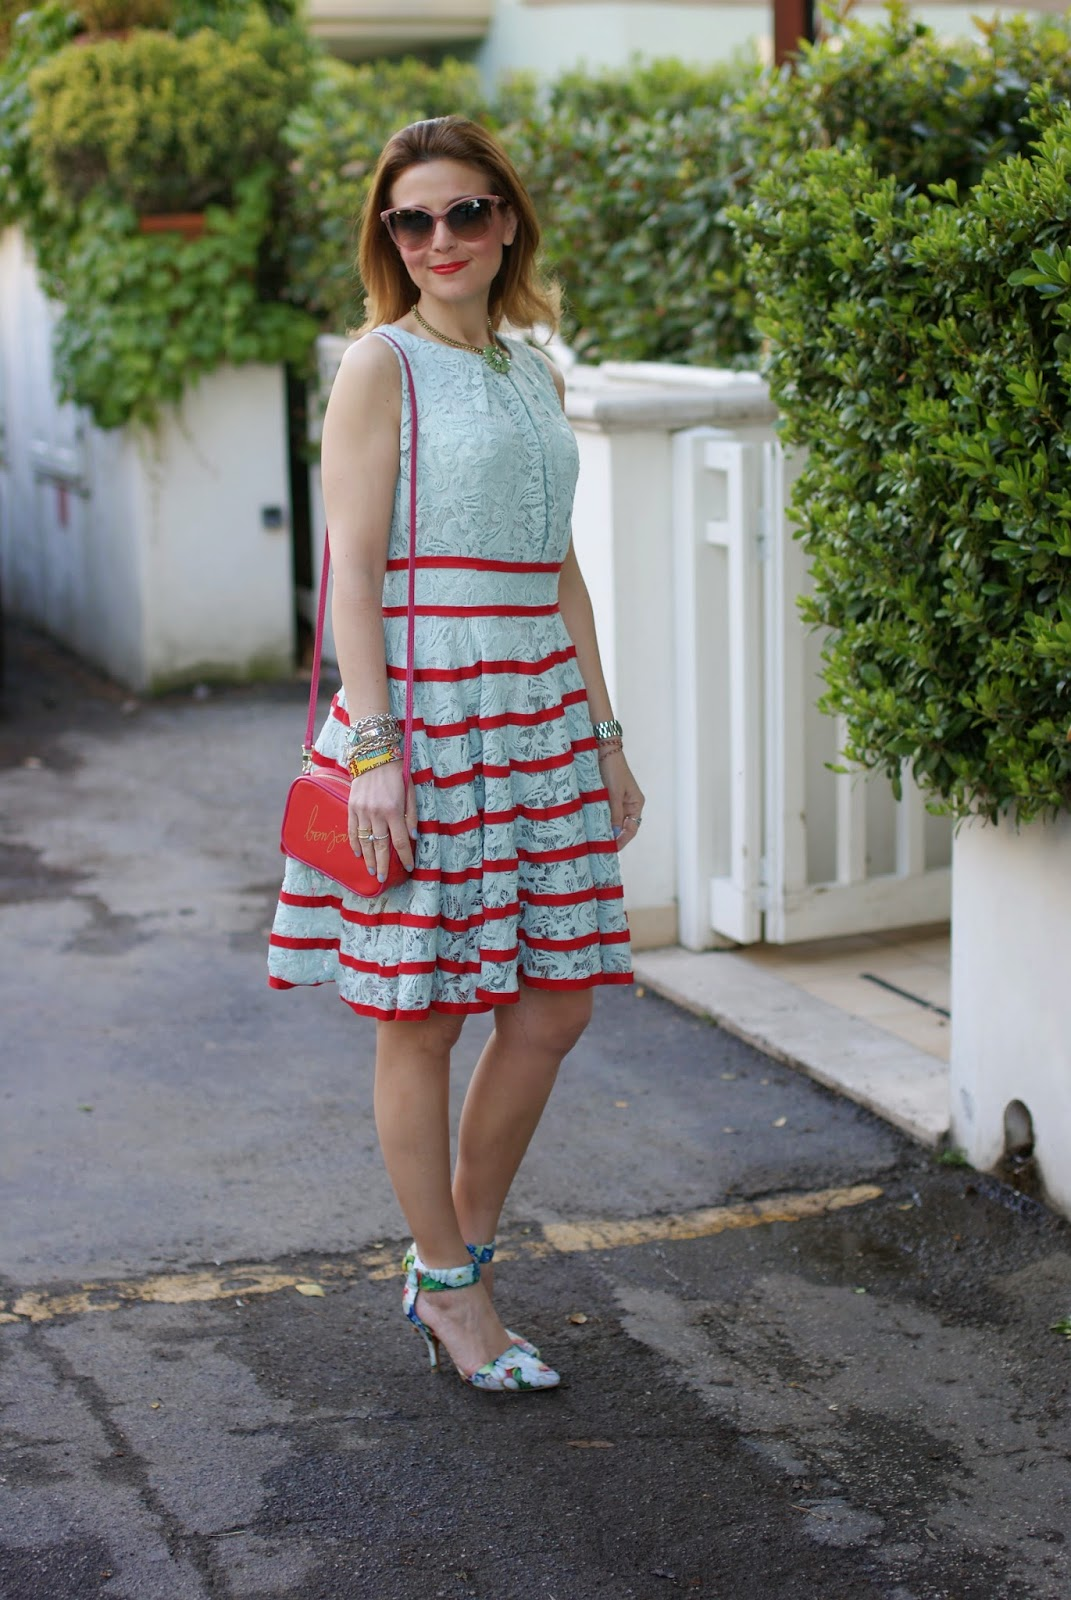 Jeffrey Campbell soltair pumps, chicwish lace dress, bonjour bag, Fashion and Cookies, fashion blogger